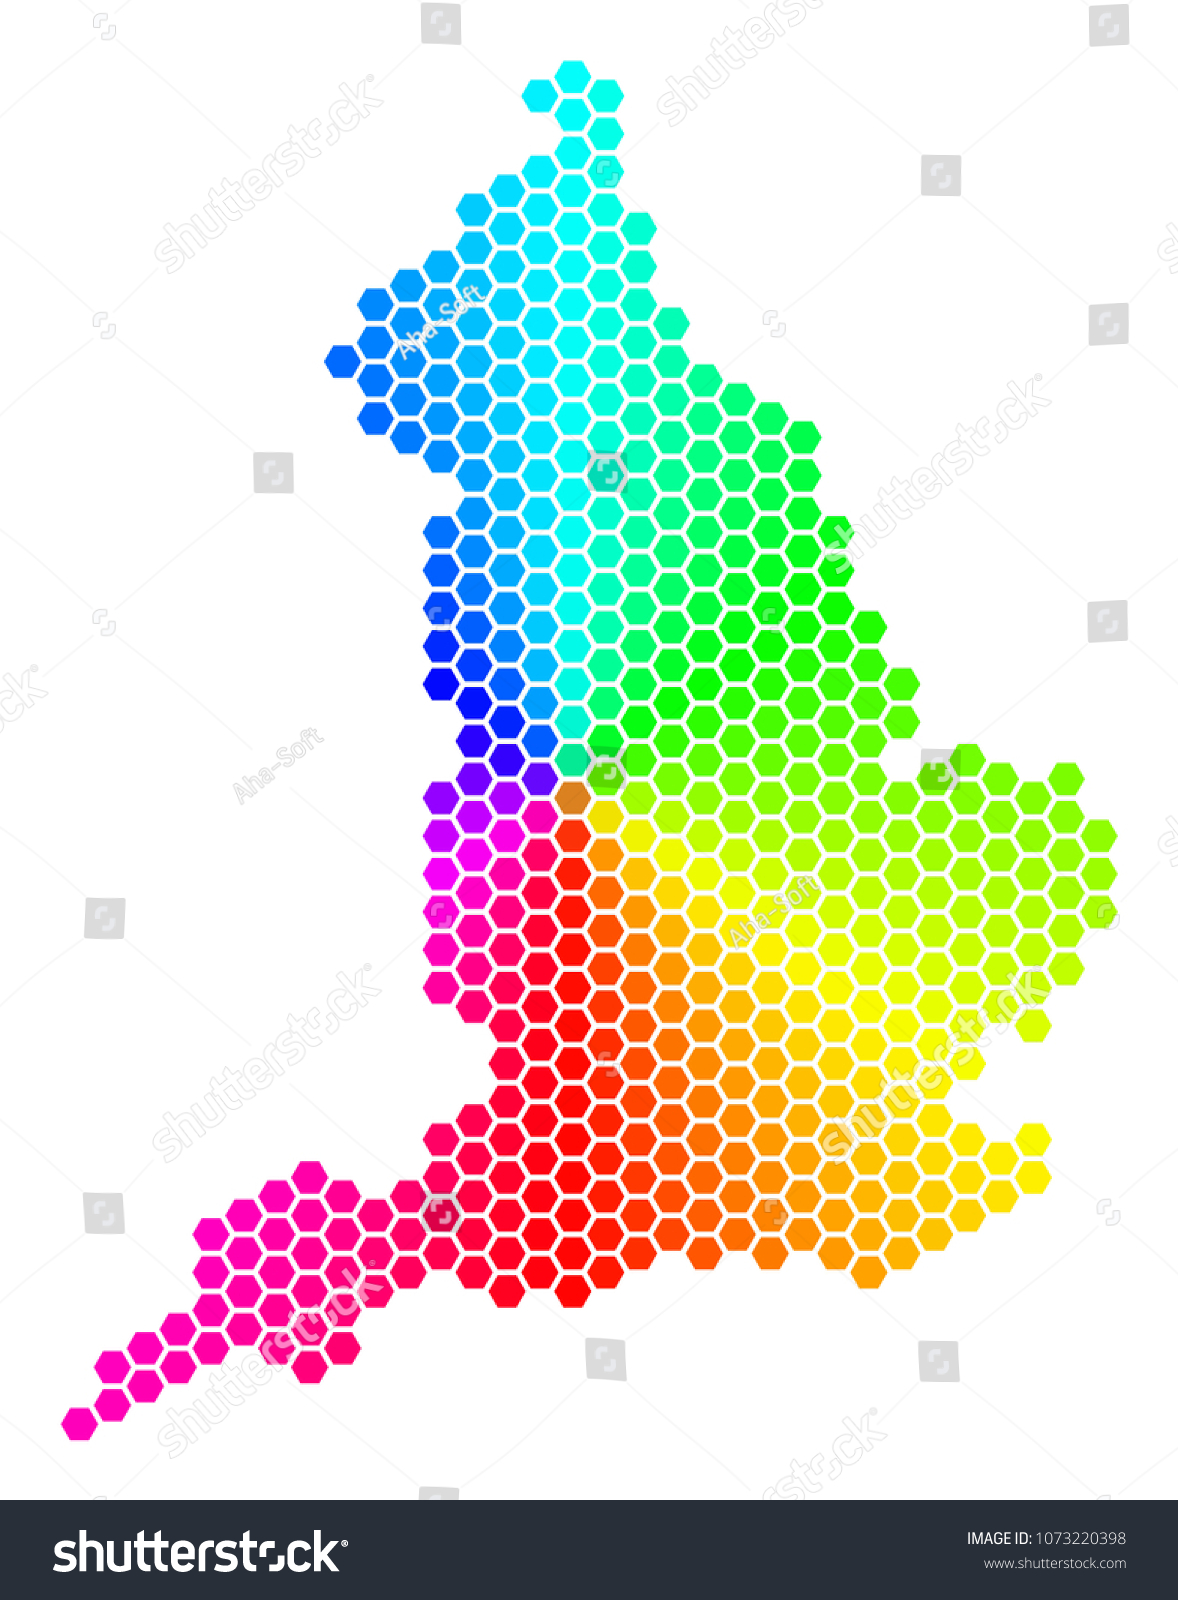 Geographic Map Of England.Hexagon Spectrum England Map Vector Geographic Stock Vector Royalty